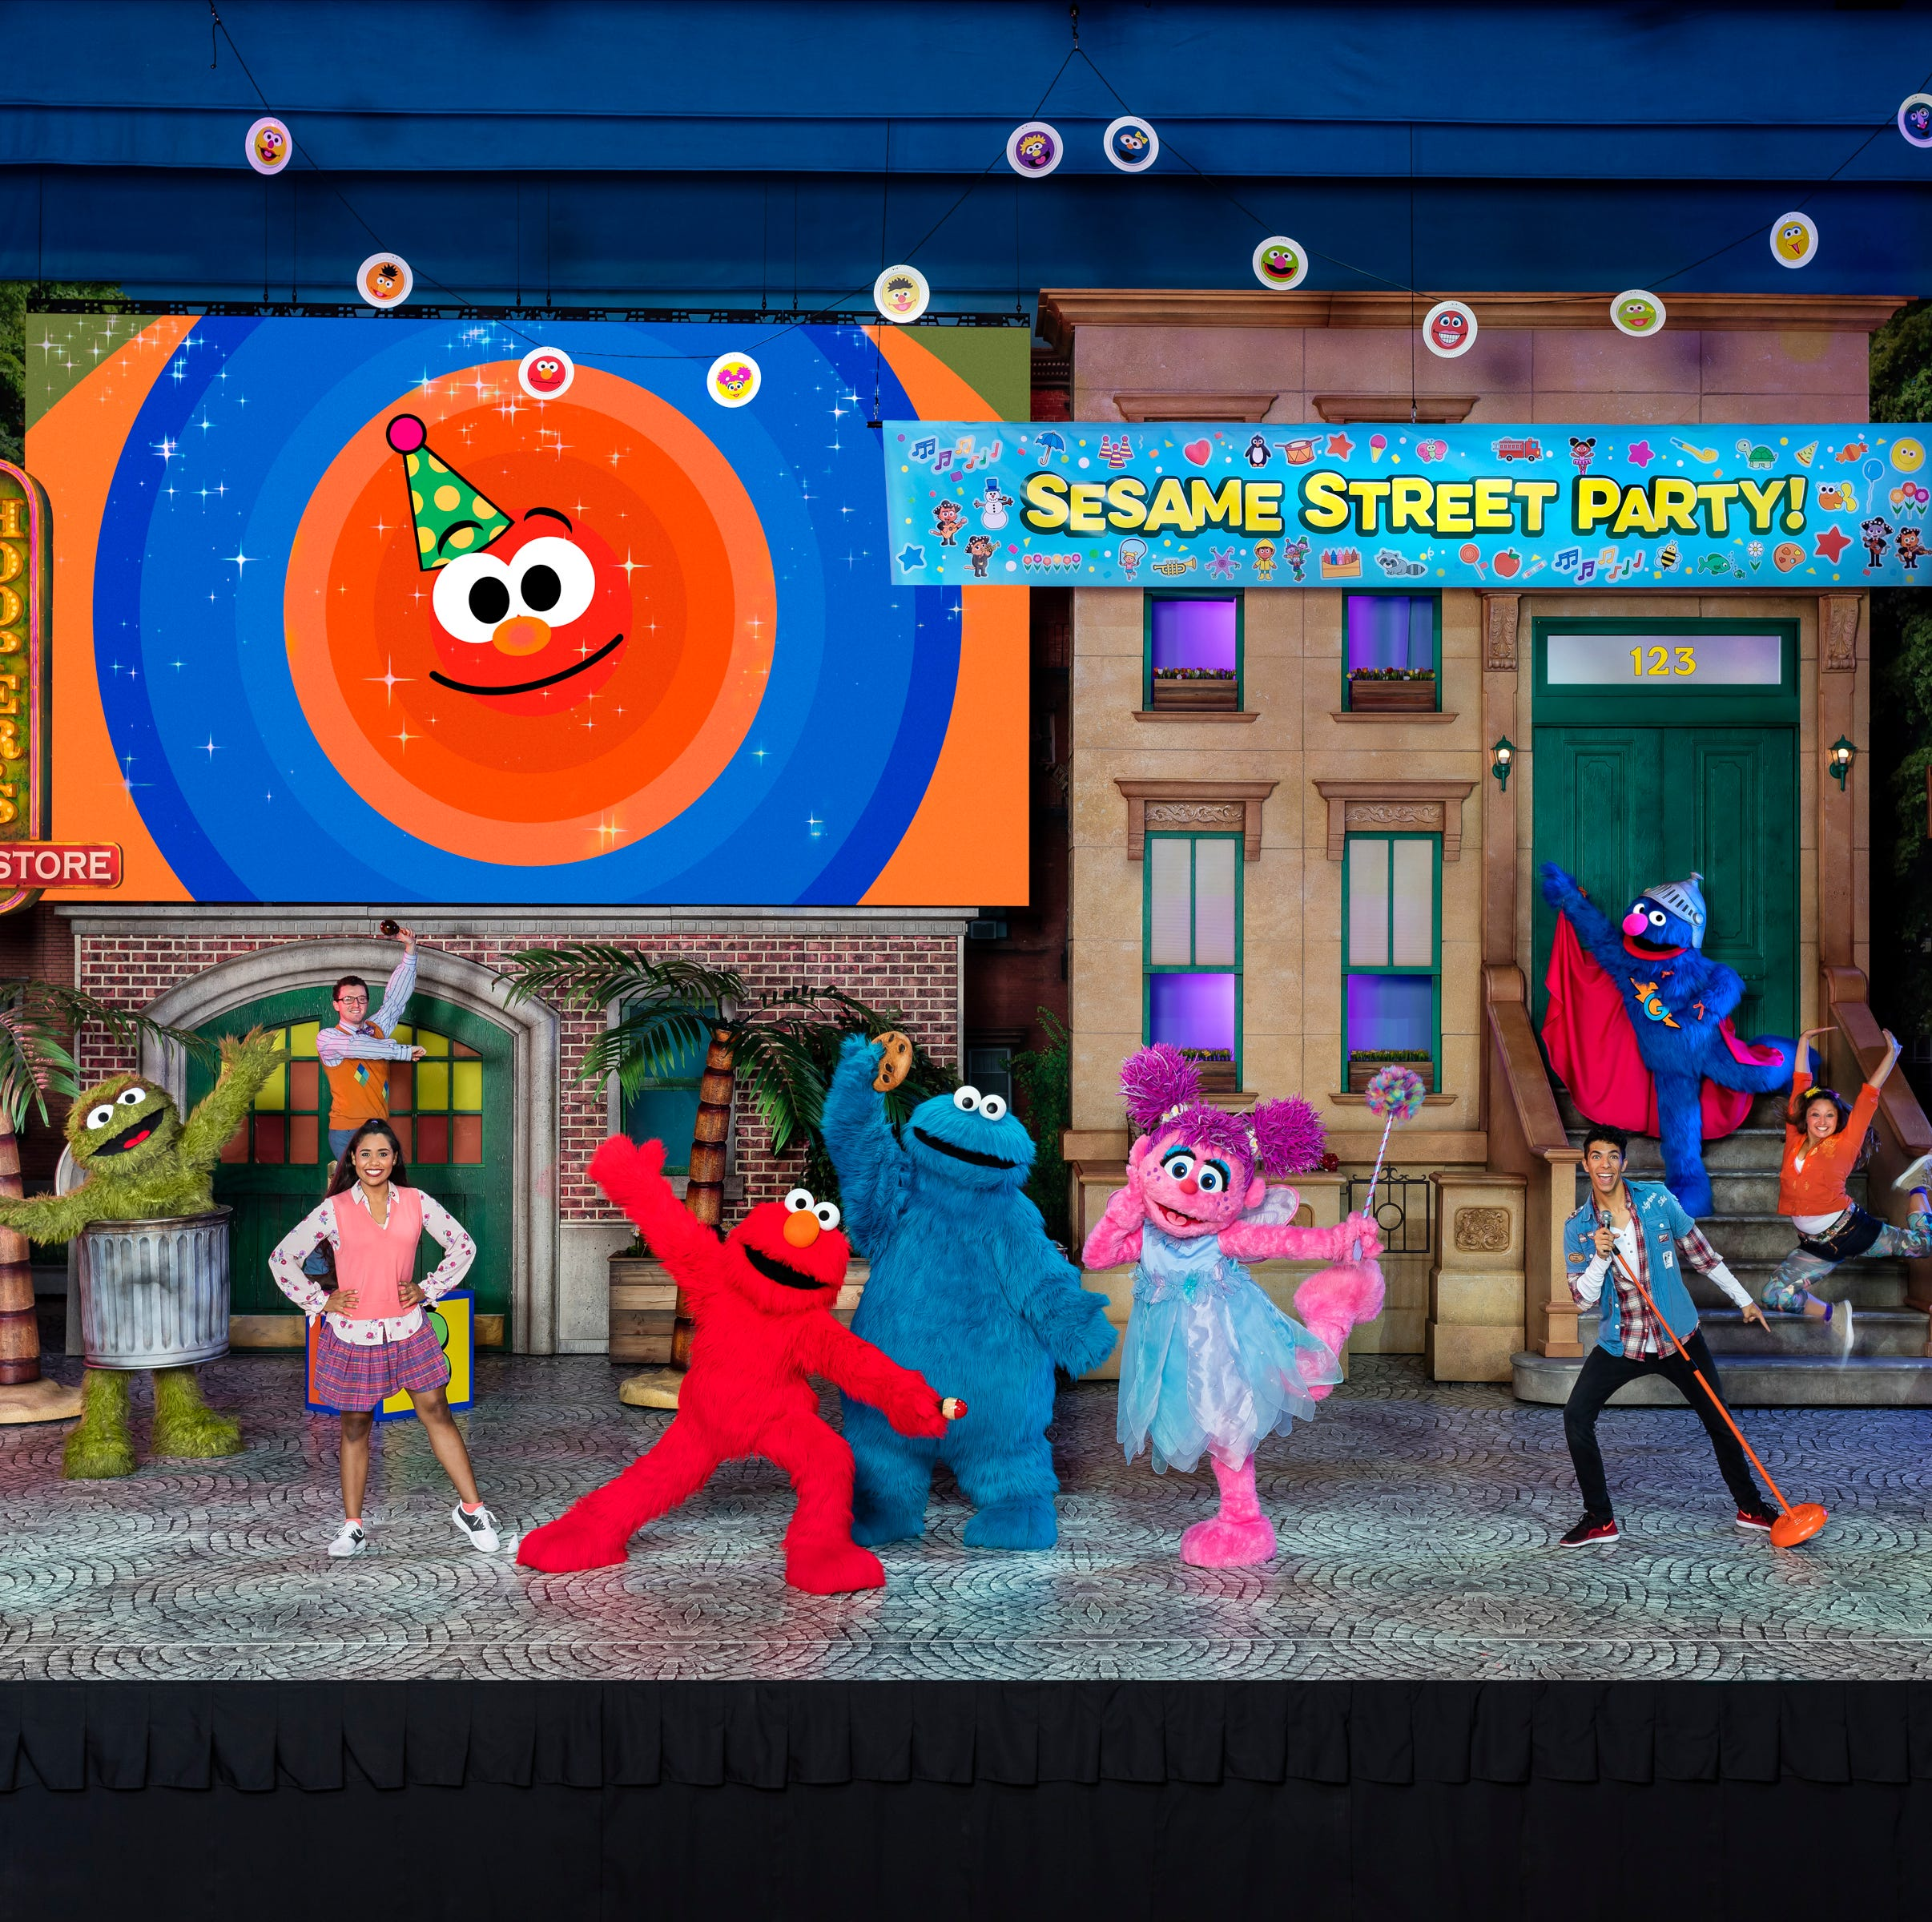 Sesame Street Live! bringing Elmo, Big Bird and more to Salisbury